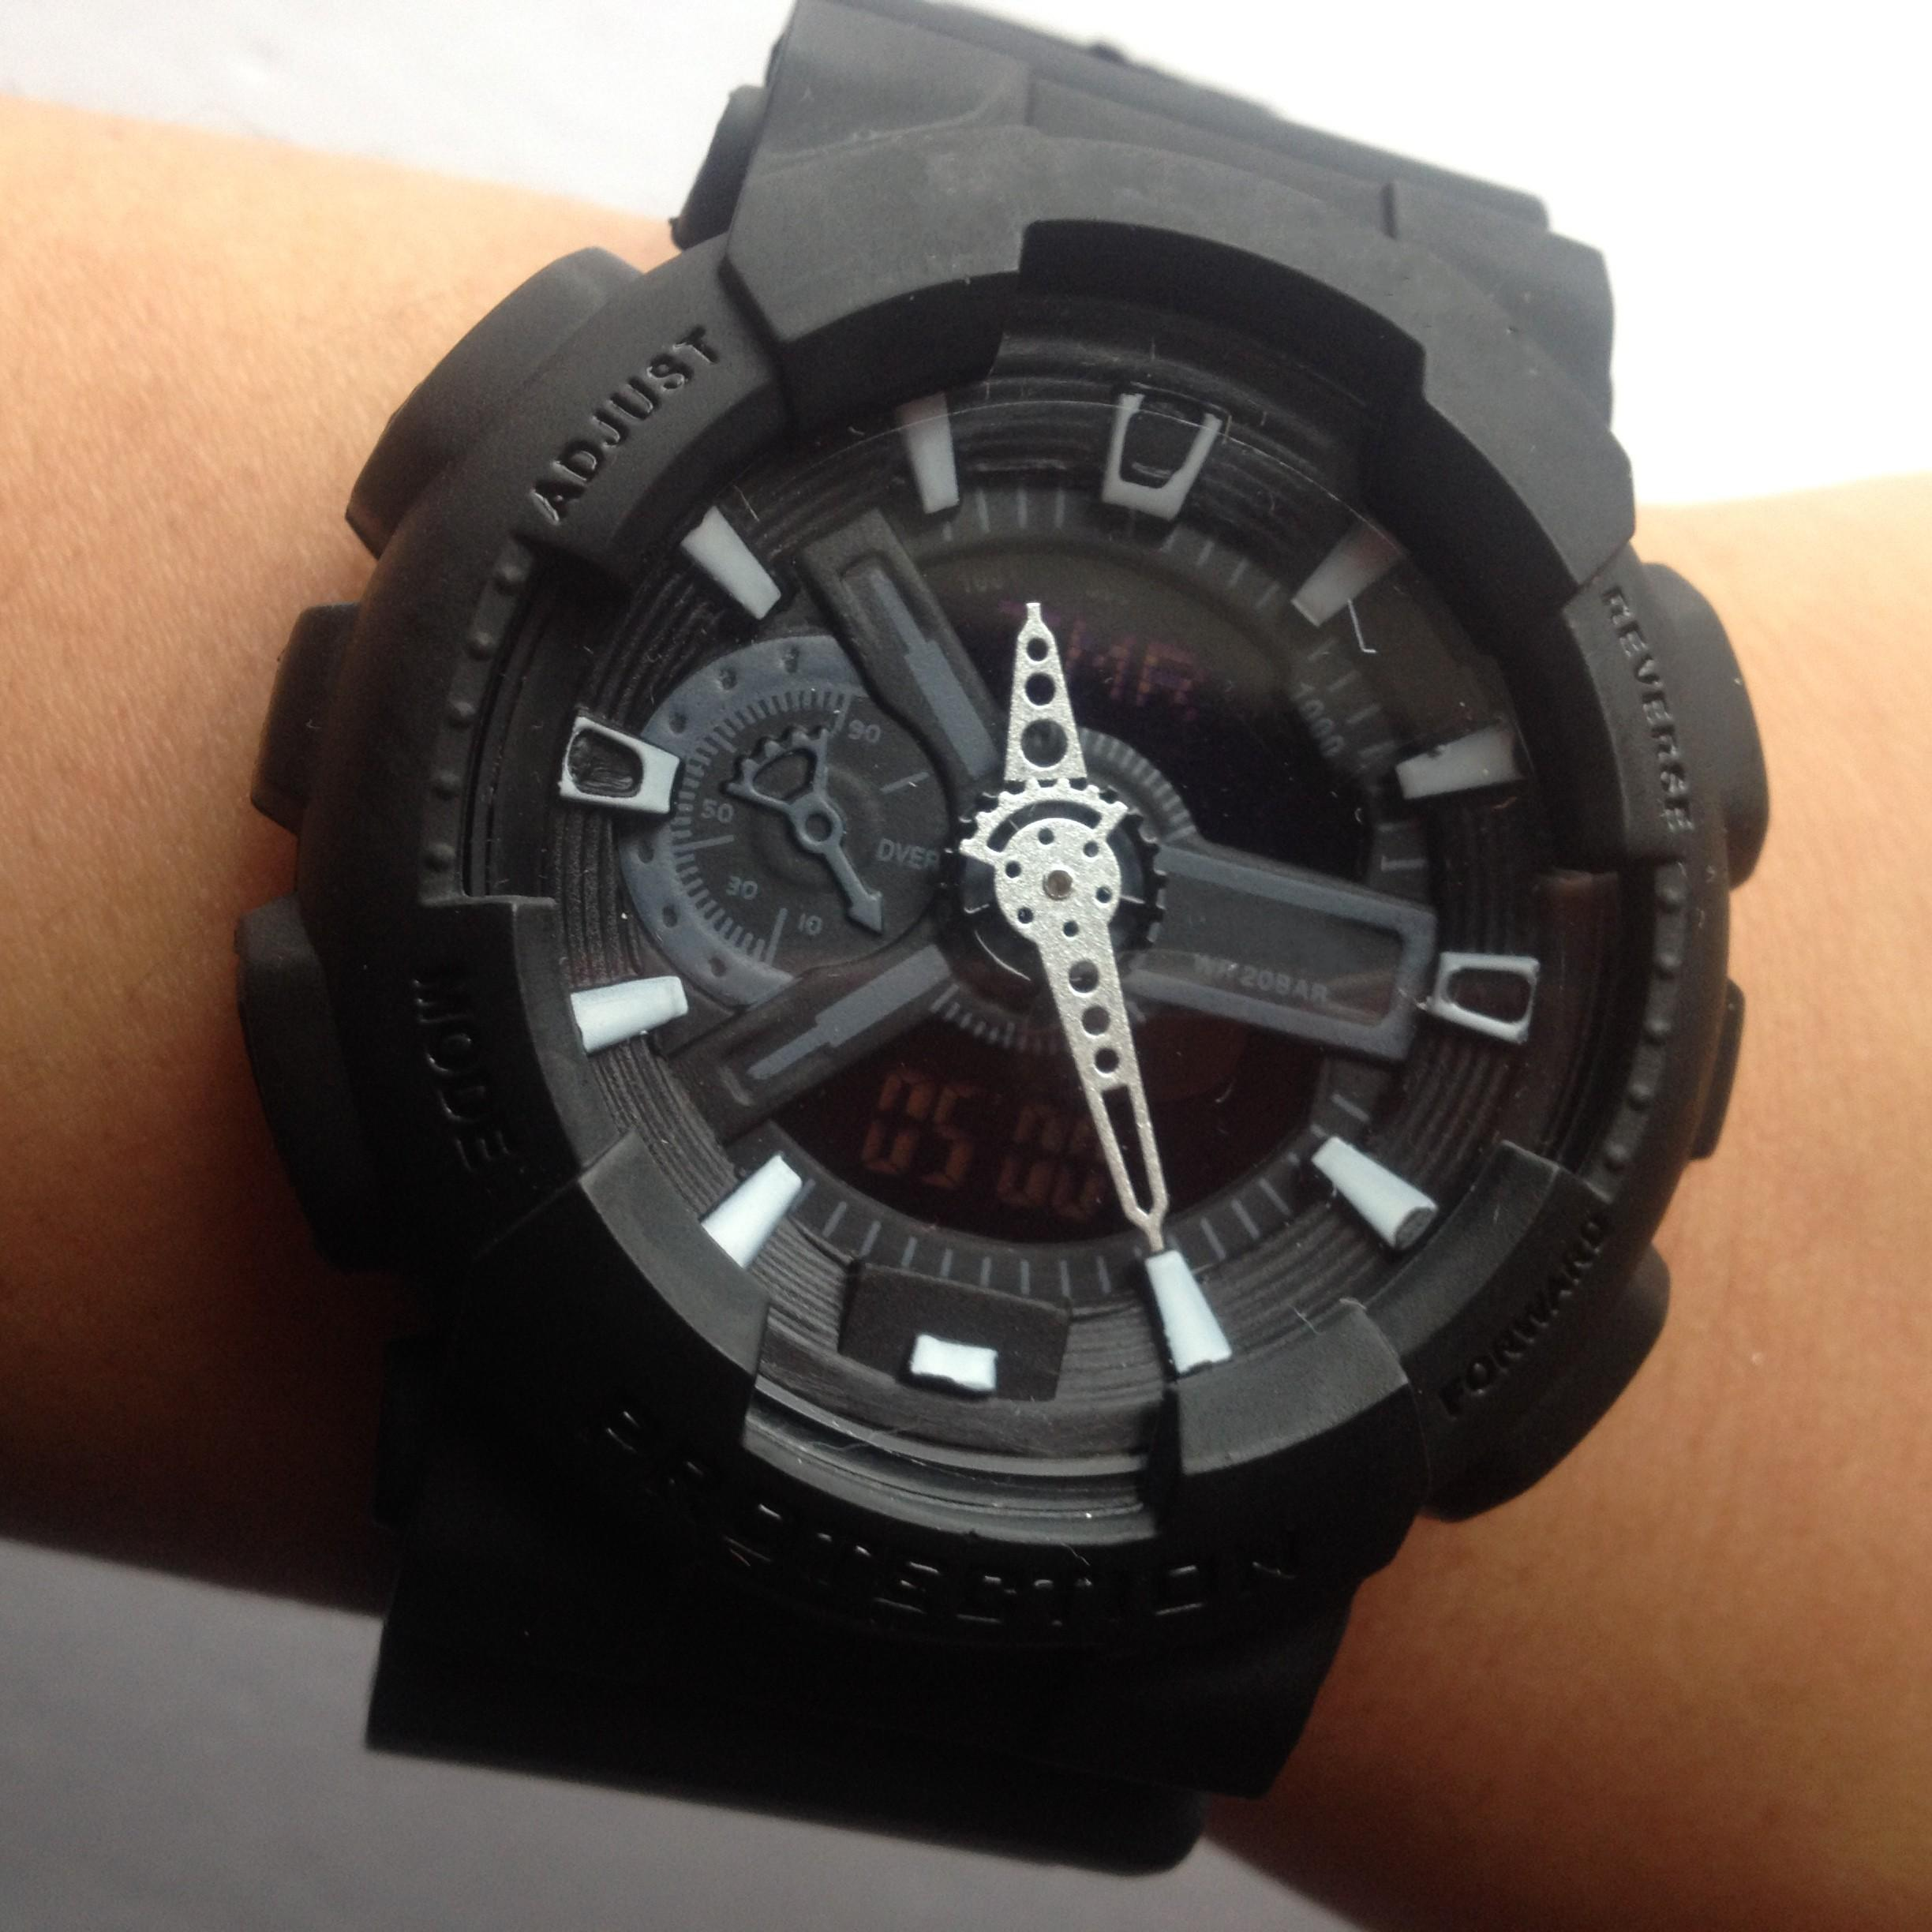 matte black color g110 sports watches led chronograph wristwatch matte black color g110 sports watches led chronograph wristwatch military watch digital watches good gift